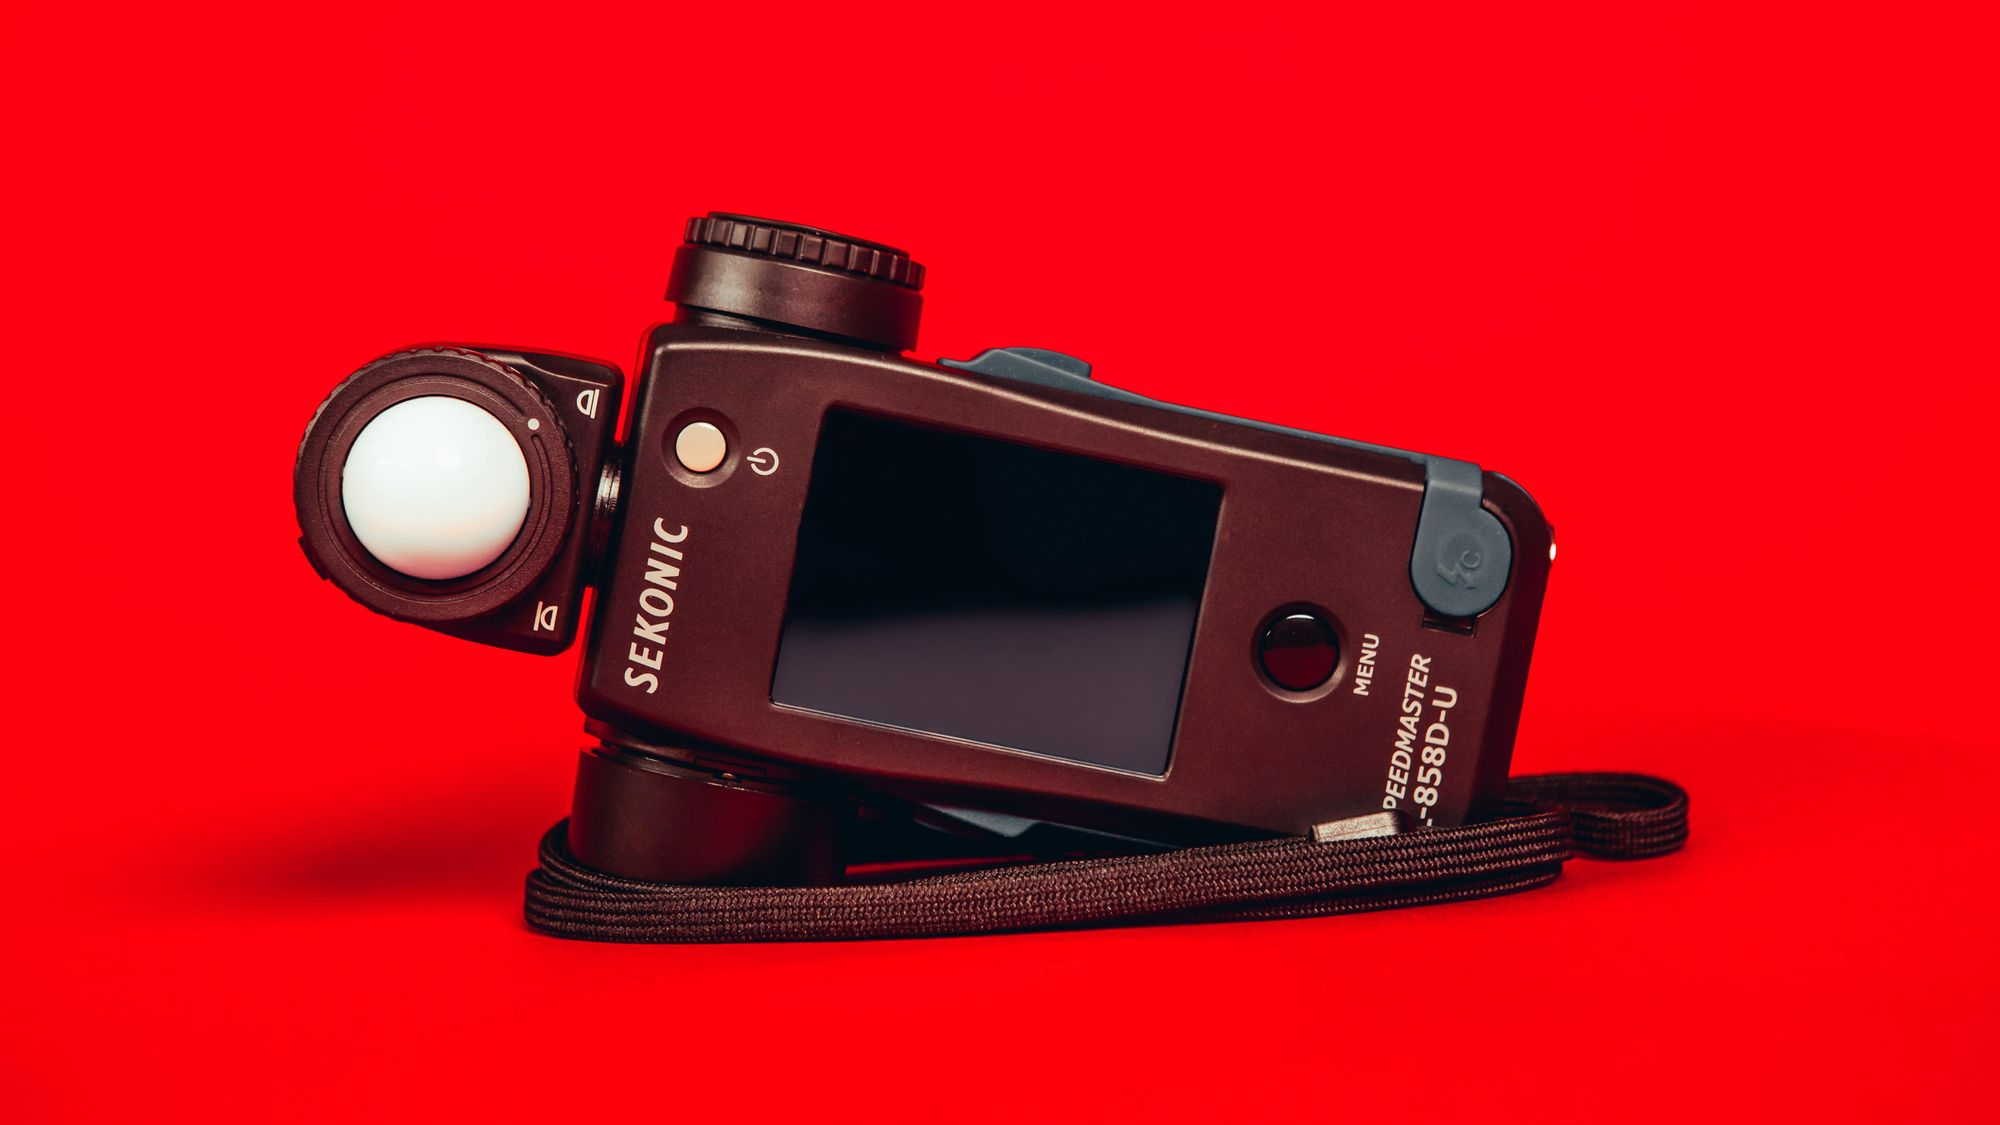 Use a light meter to get your lighting right